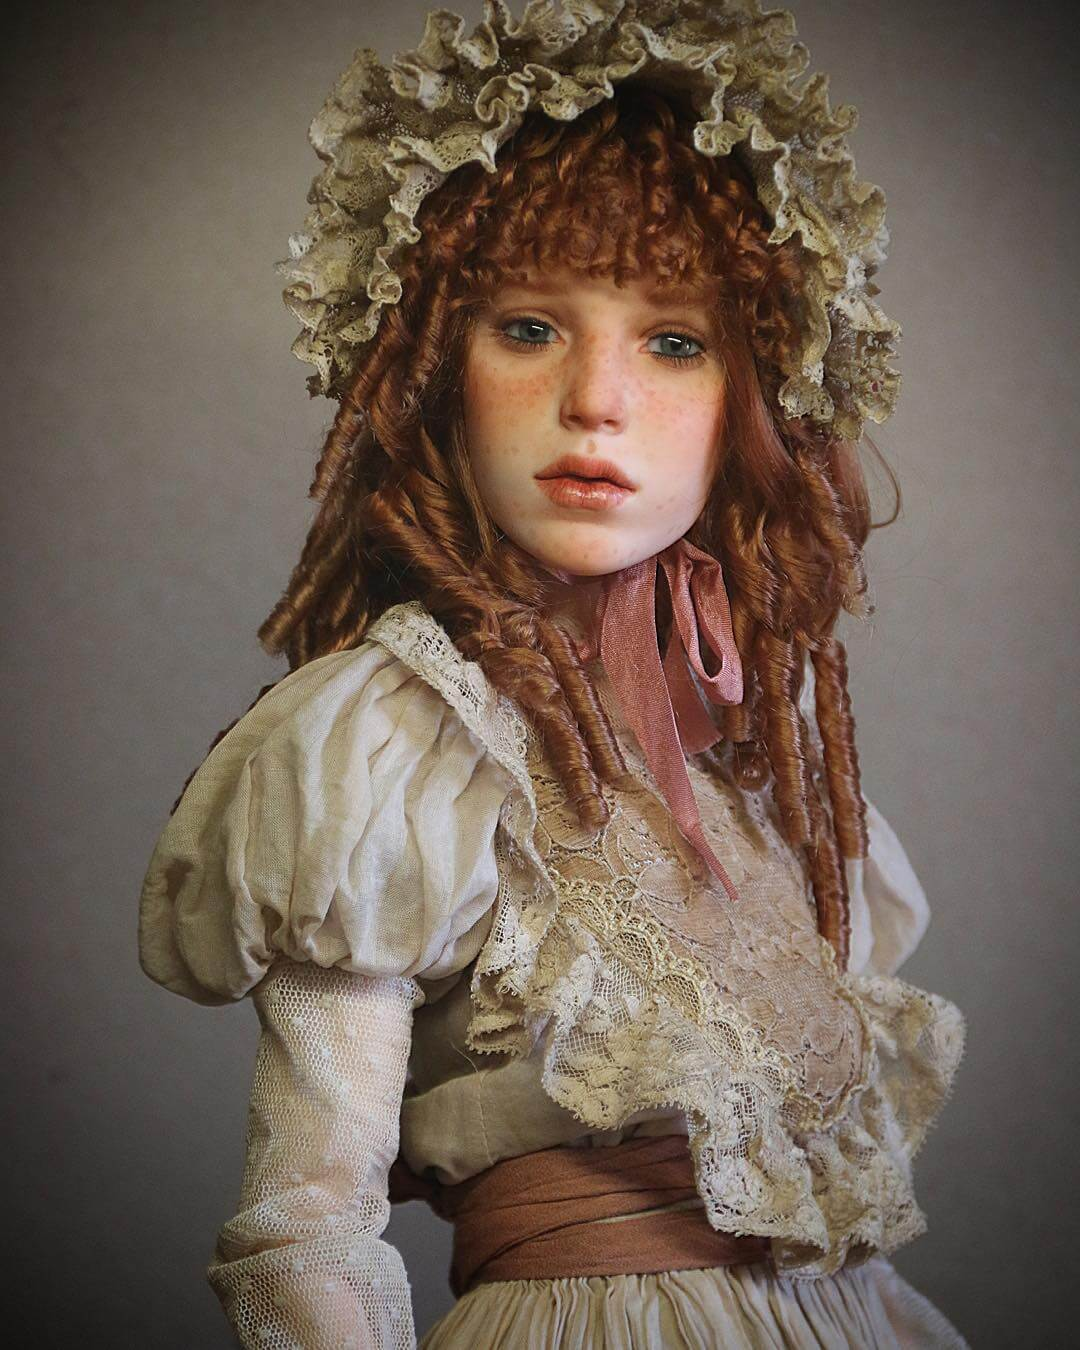 hyper realistic dolls michael zajkov fy 15 - Michael Zajkov Makes Amazingly Realistic Doll Faces That Will Make Your Skin Shiver